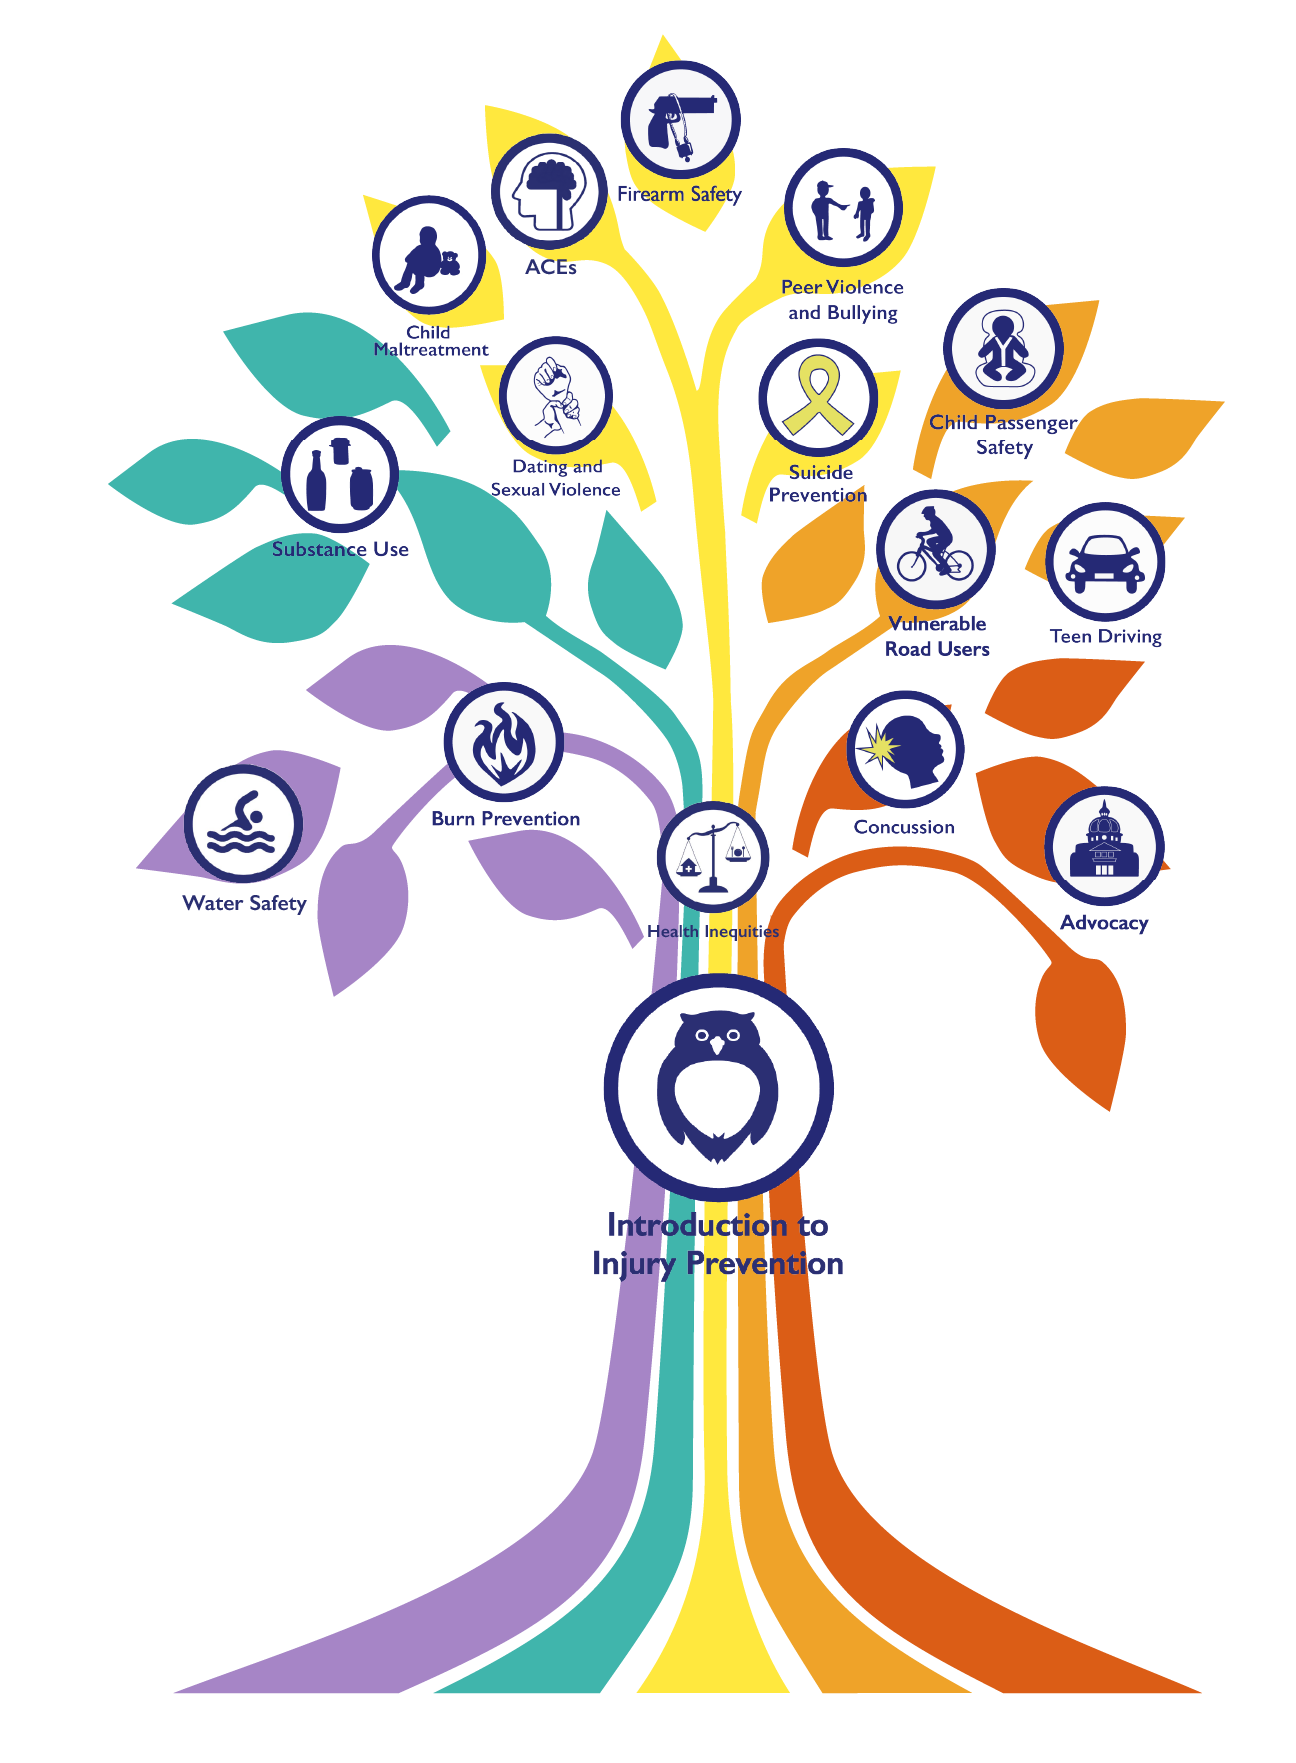 tree image with subject icons